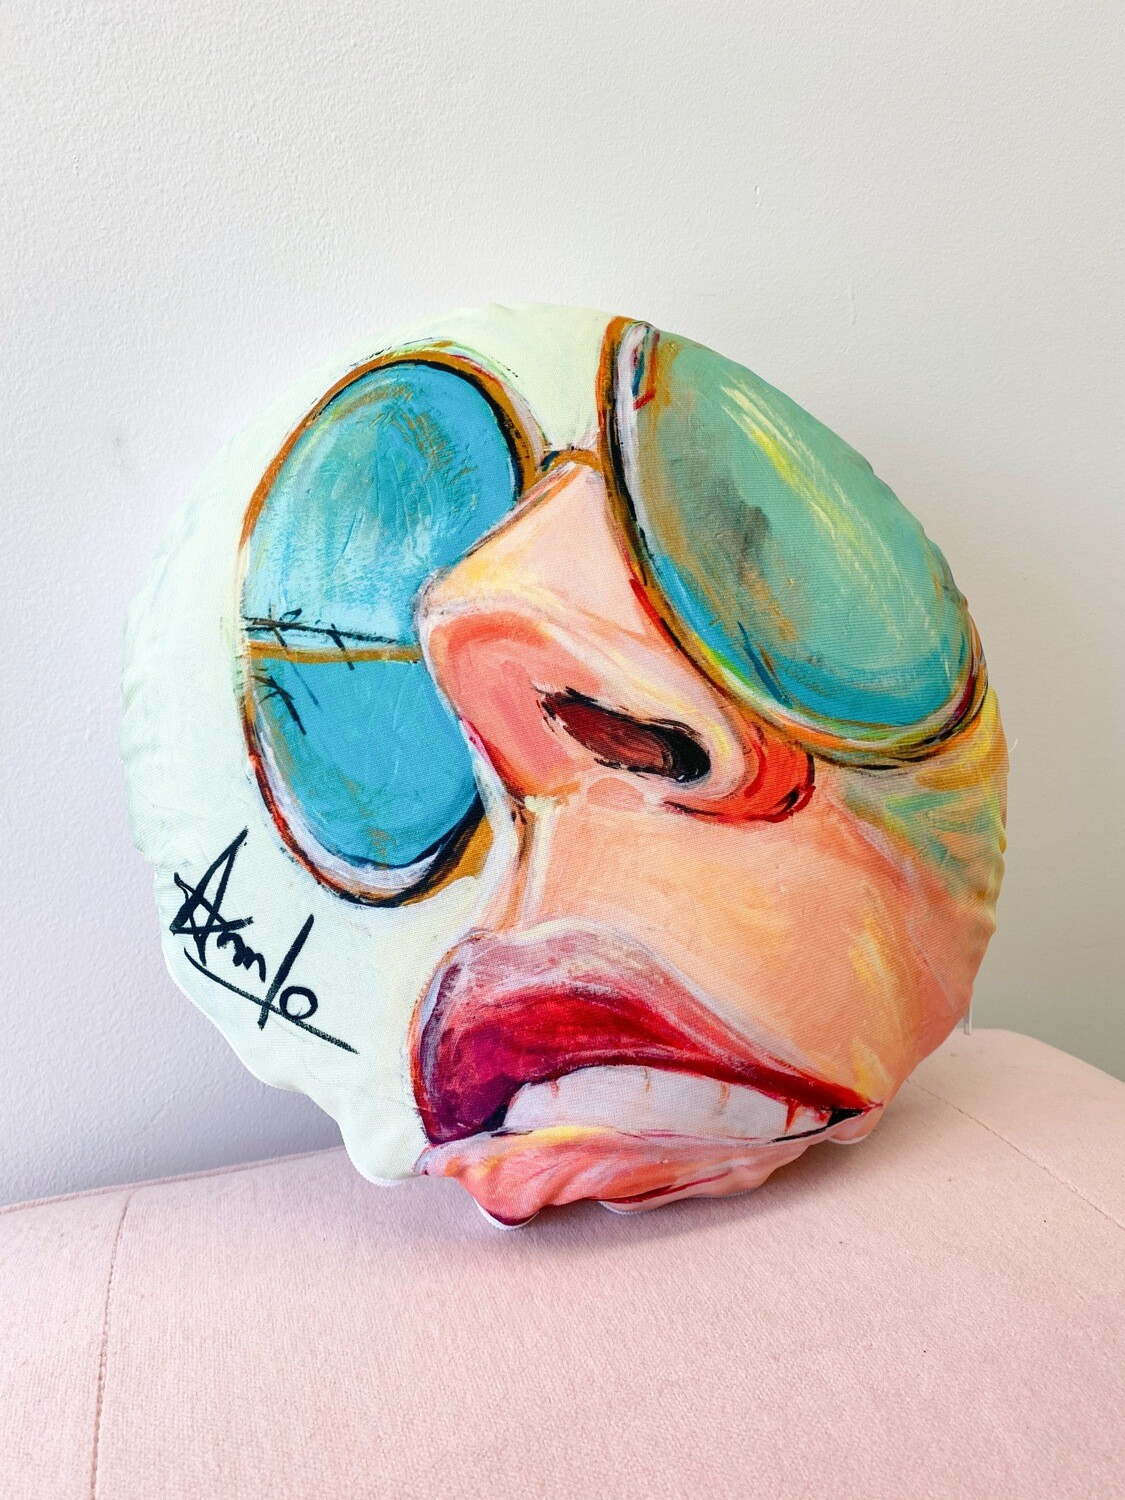 15'' x 15'' Traveling Dreamer (California collection, limited edition)